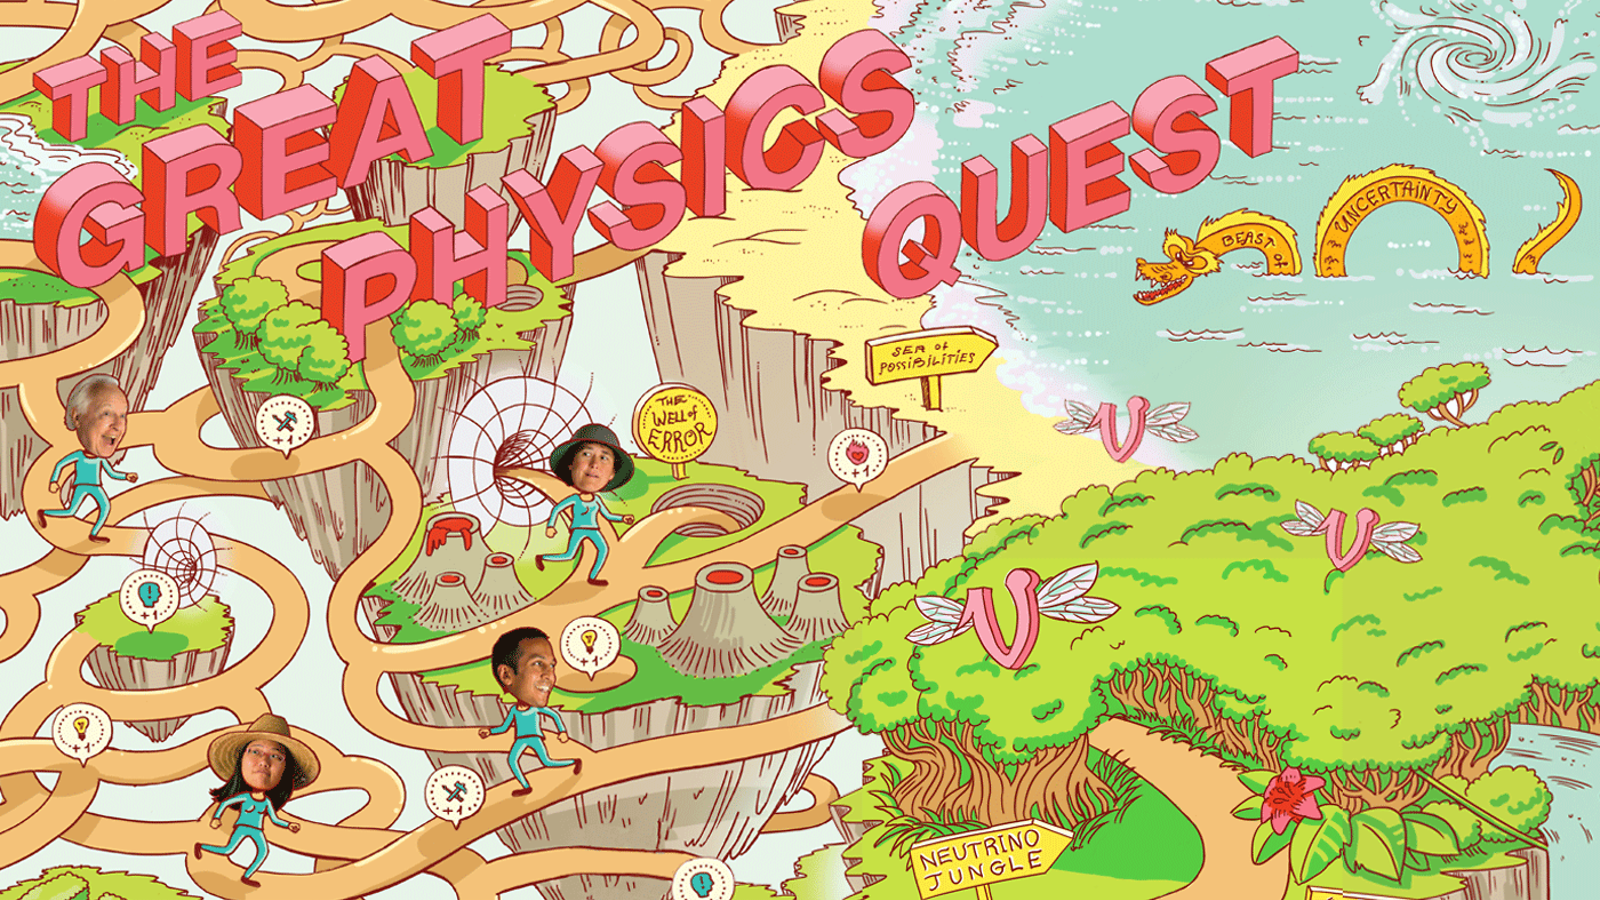 Physicists on Great Physics Quest